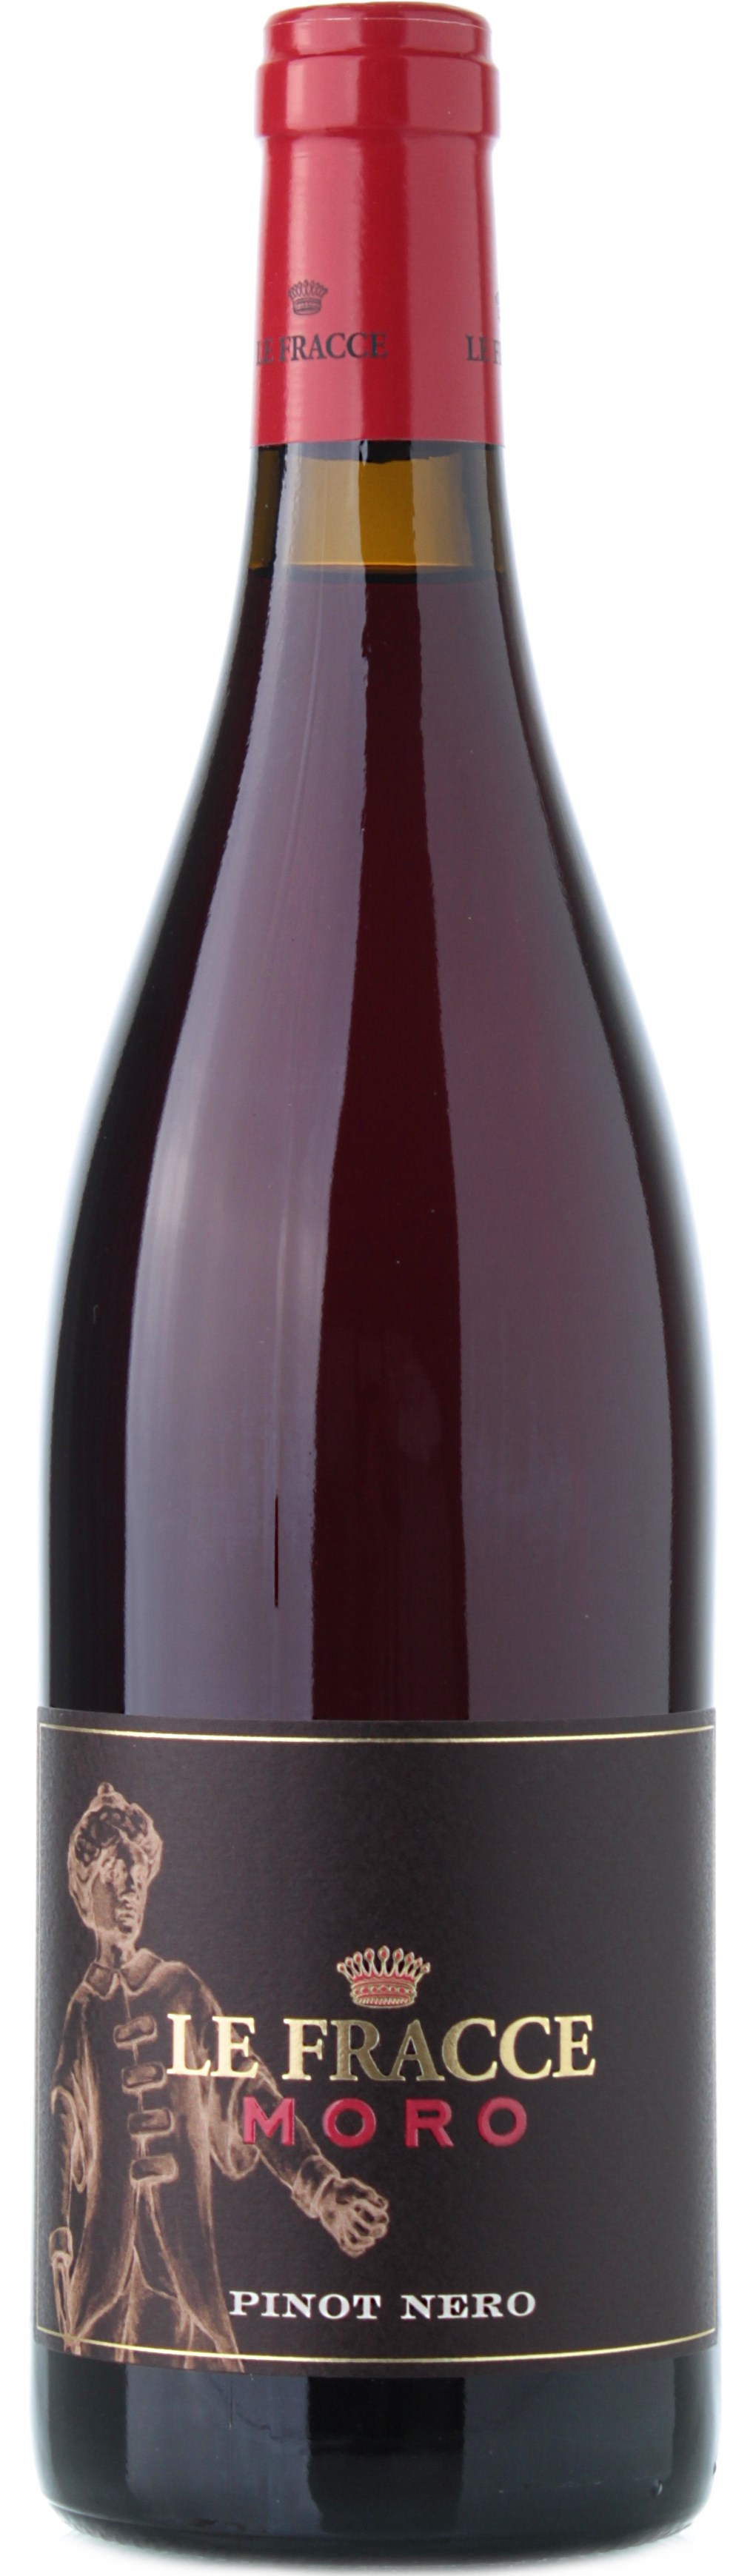 LE FRACCE PINOT NERO IGT MORO 2015